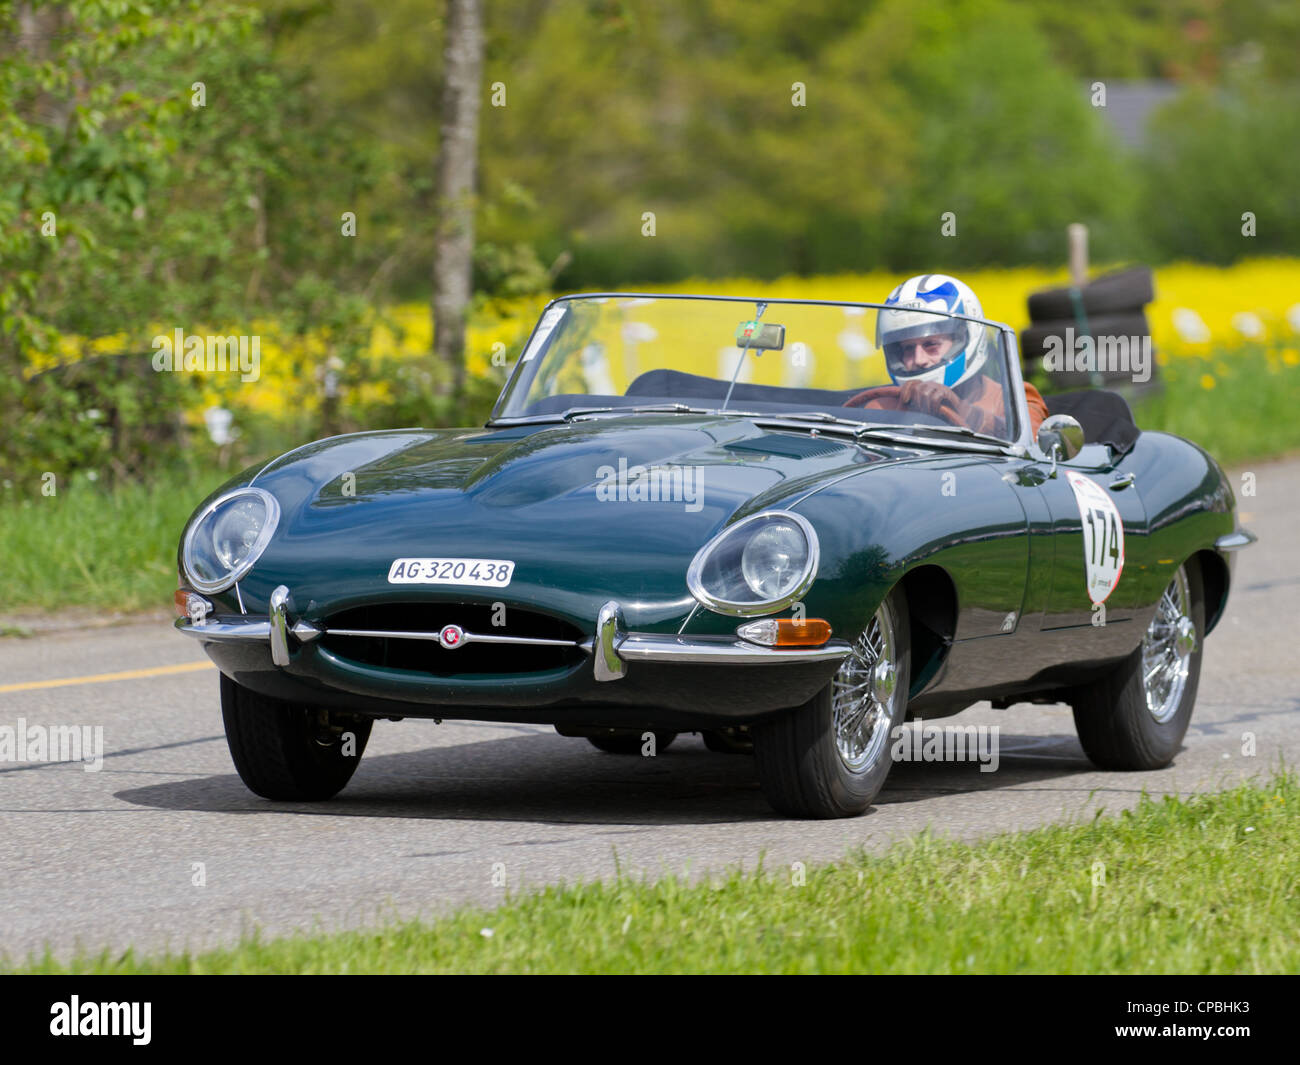 engine jaguar e type stockfotos engine jaguar e type bilder alamy. Black Bedroom Furniture Sets. Home Design Ideas